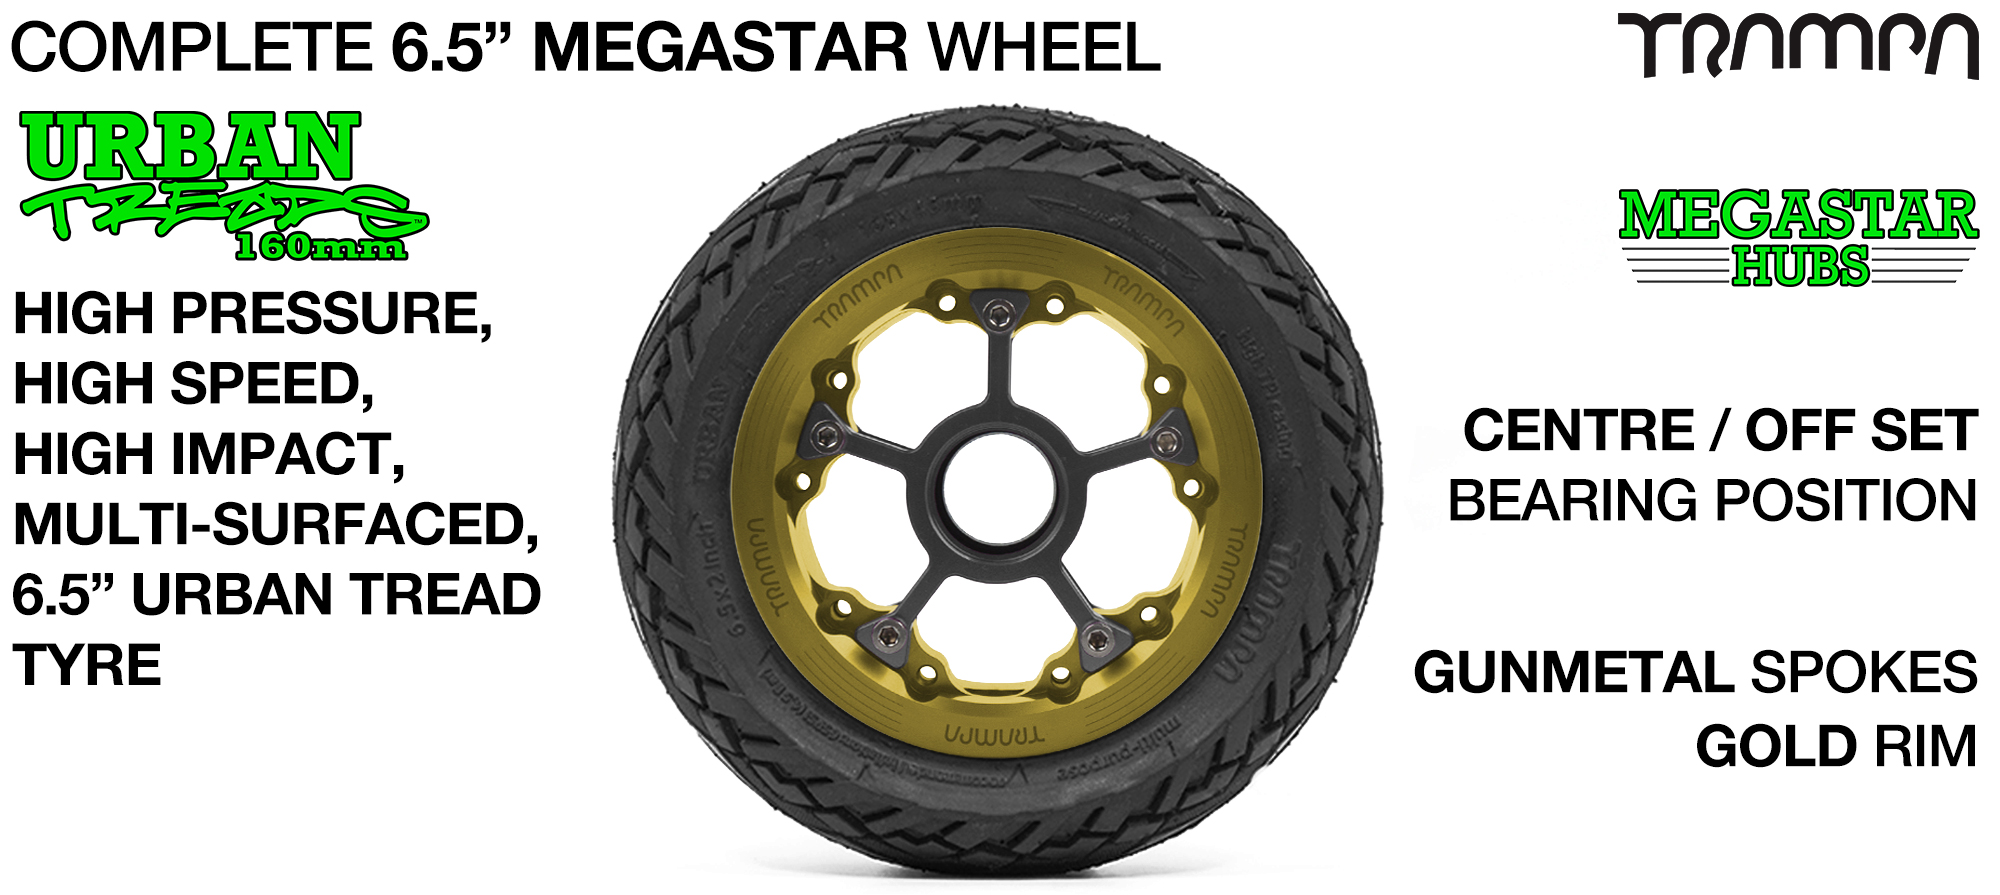 GOLD MEGASTAR Rims with GUNMETAL Spokes & 6.5 Inch URBAN Treads Tyres